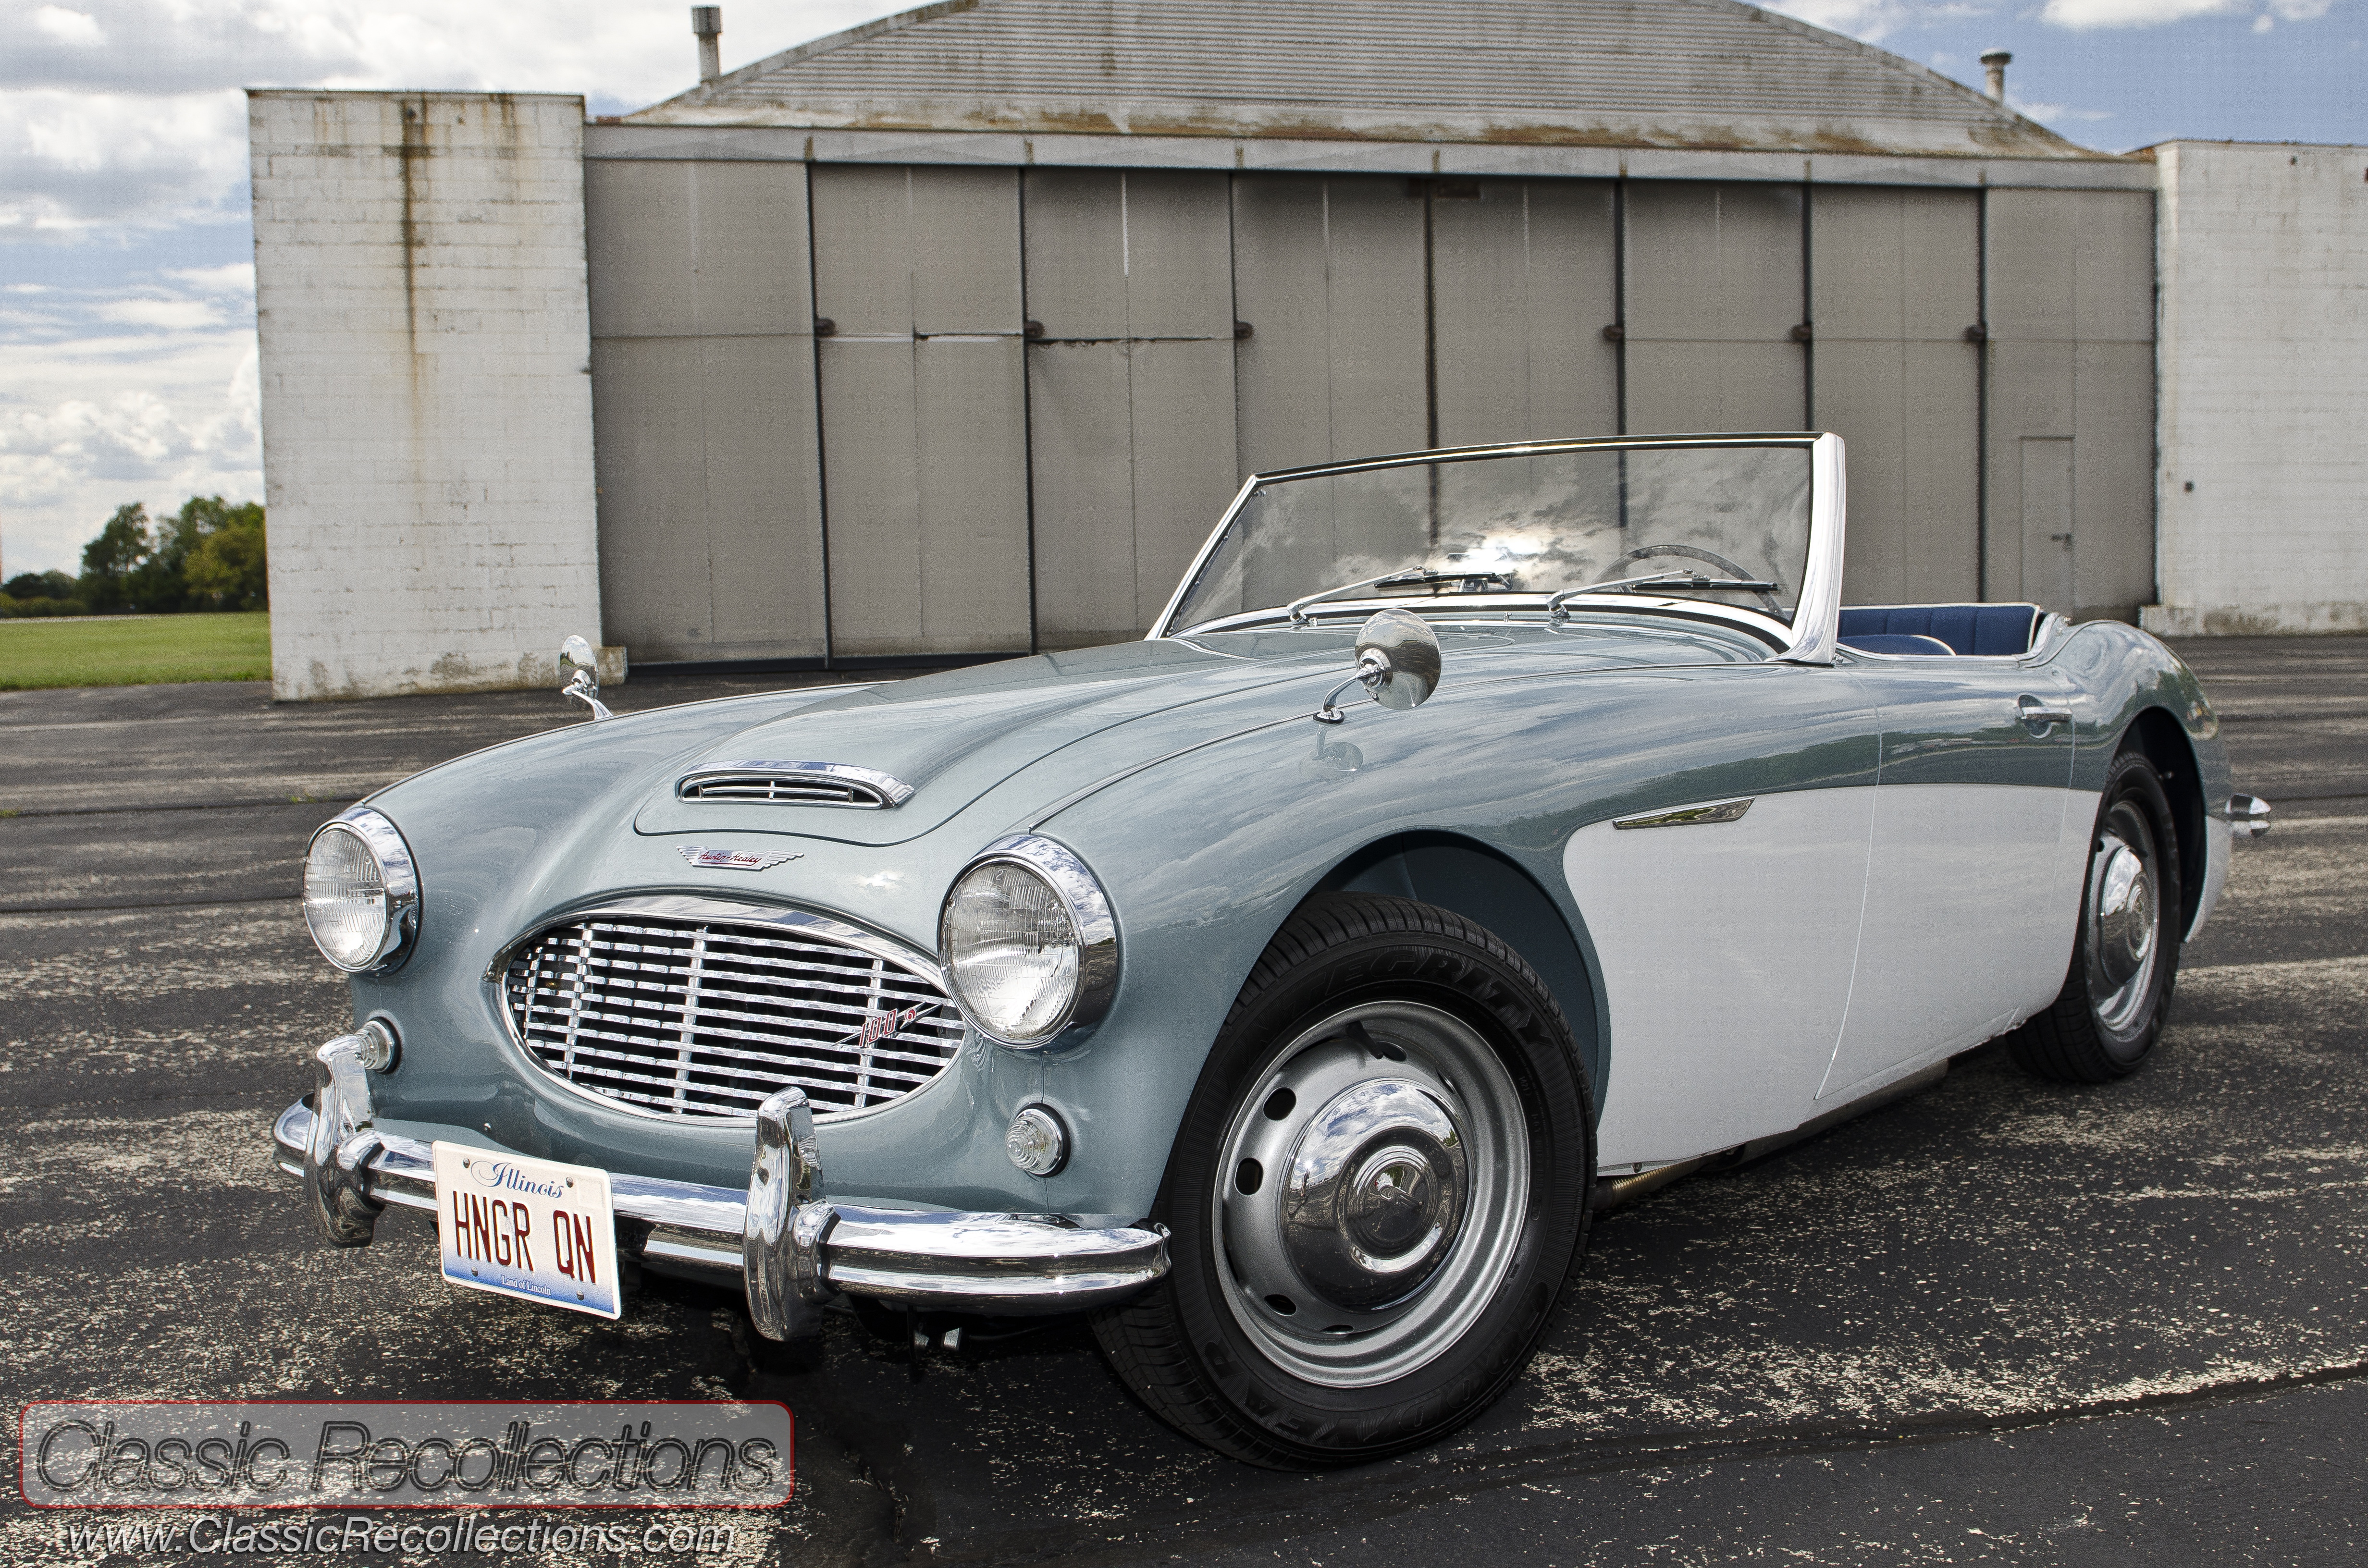 Feature 1959 Austin Healey Model 100 6 Classic Recollections